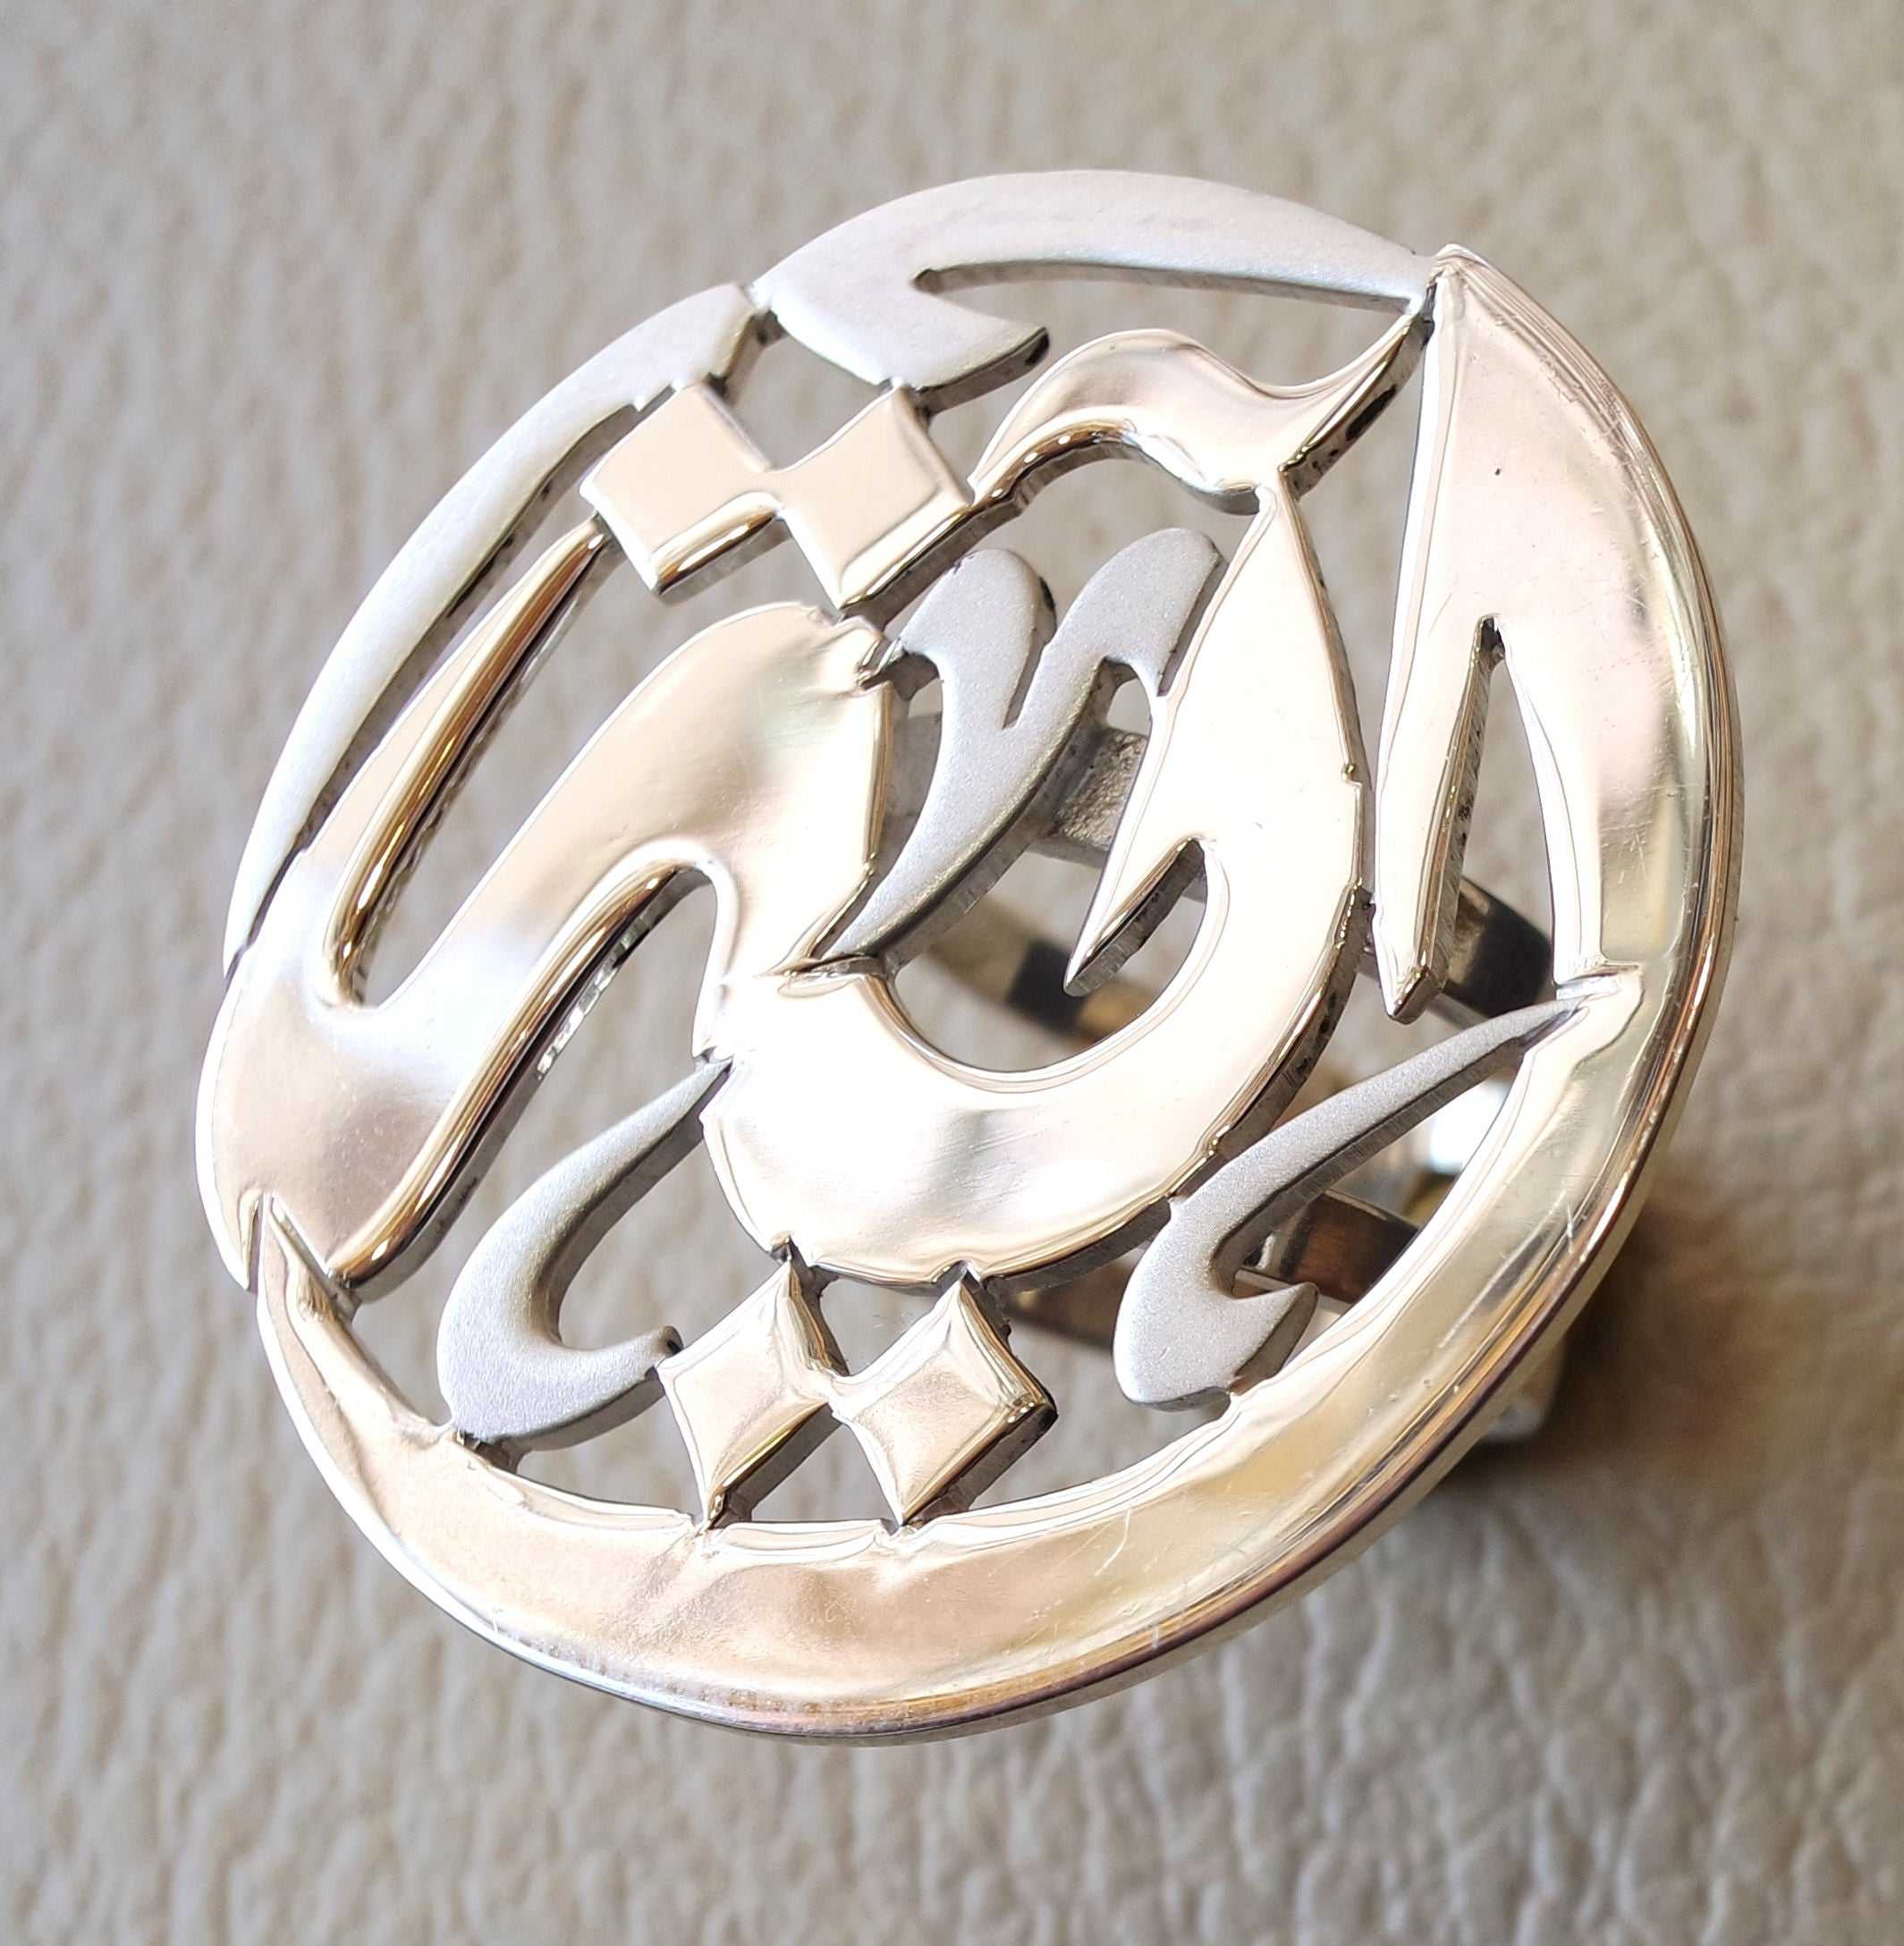 arabic customized calligraphy name round double shank ring sterling silver 925 designed to fit all sizes high quality jewelry